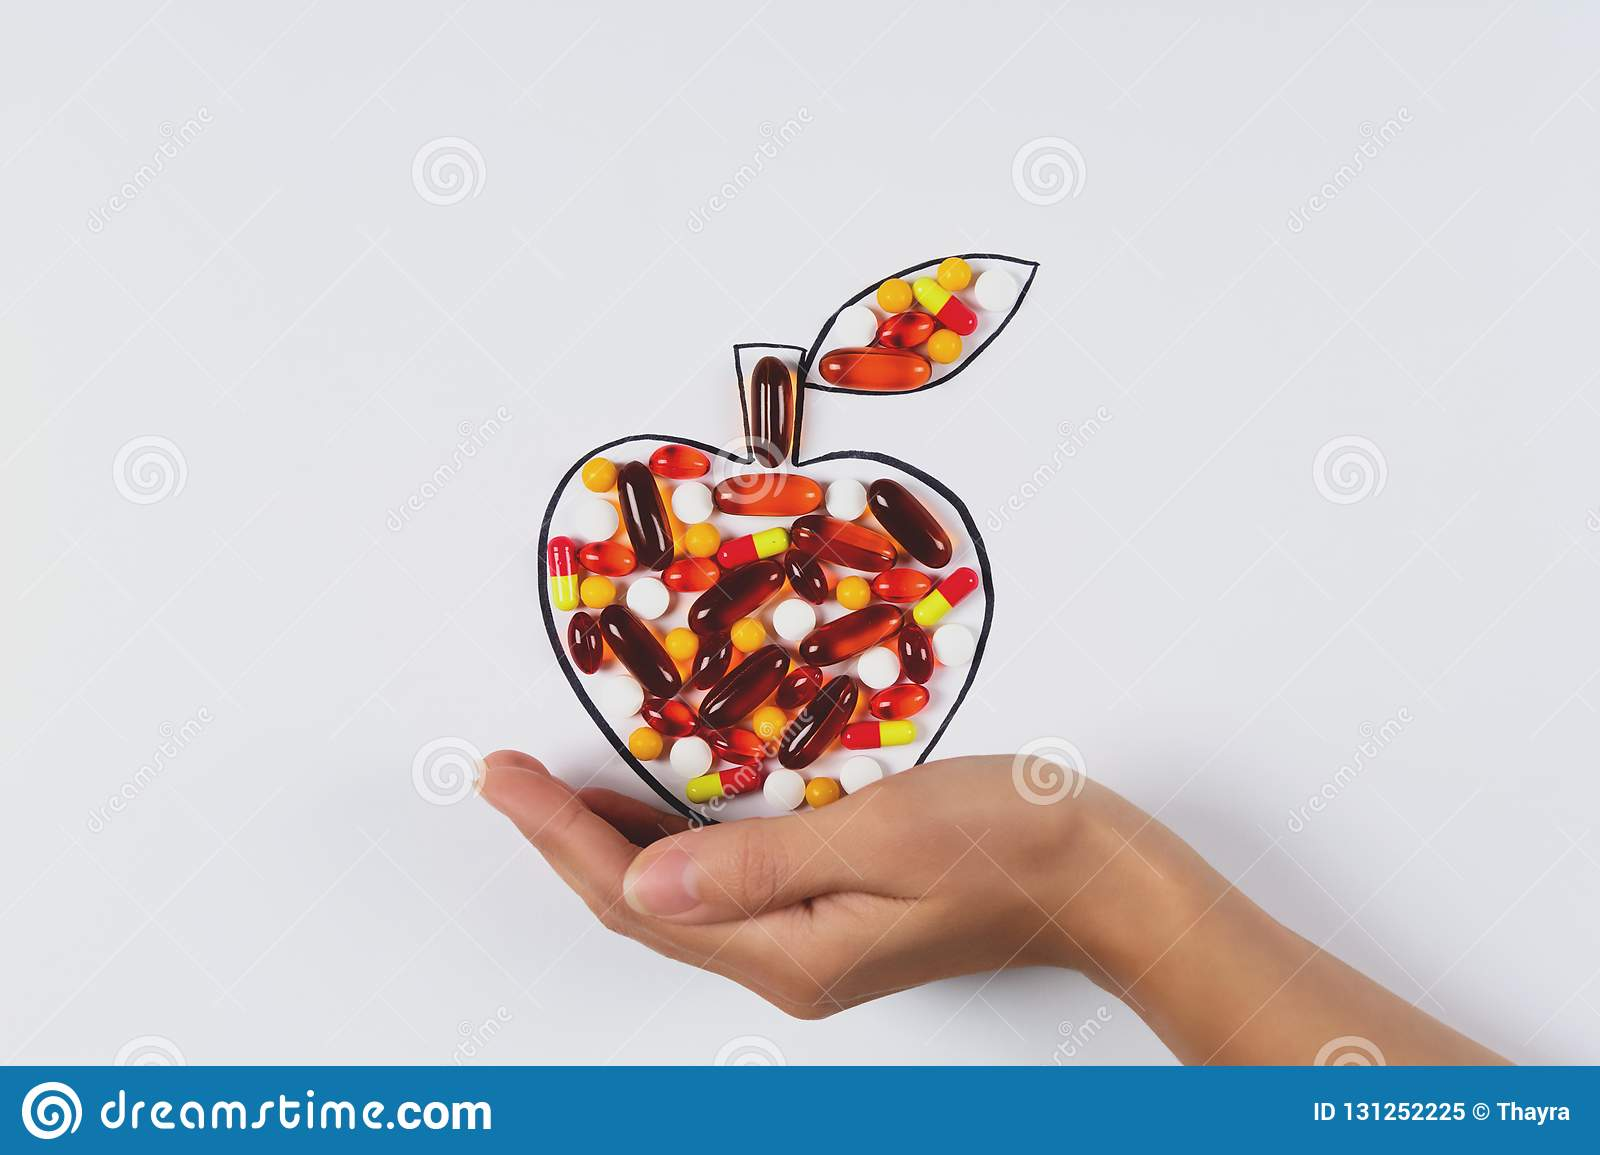 Hand holding drawing apple with colorful capsules and pills on white background. Health care vitamins or synthetic food concept.